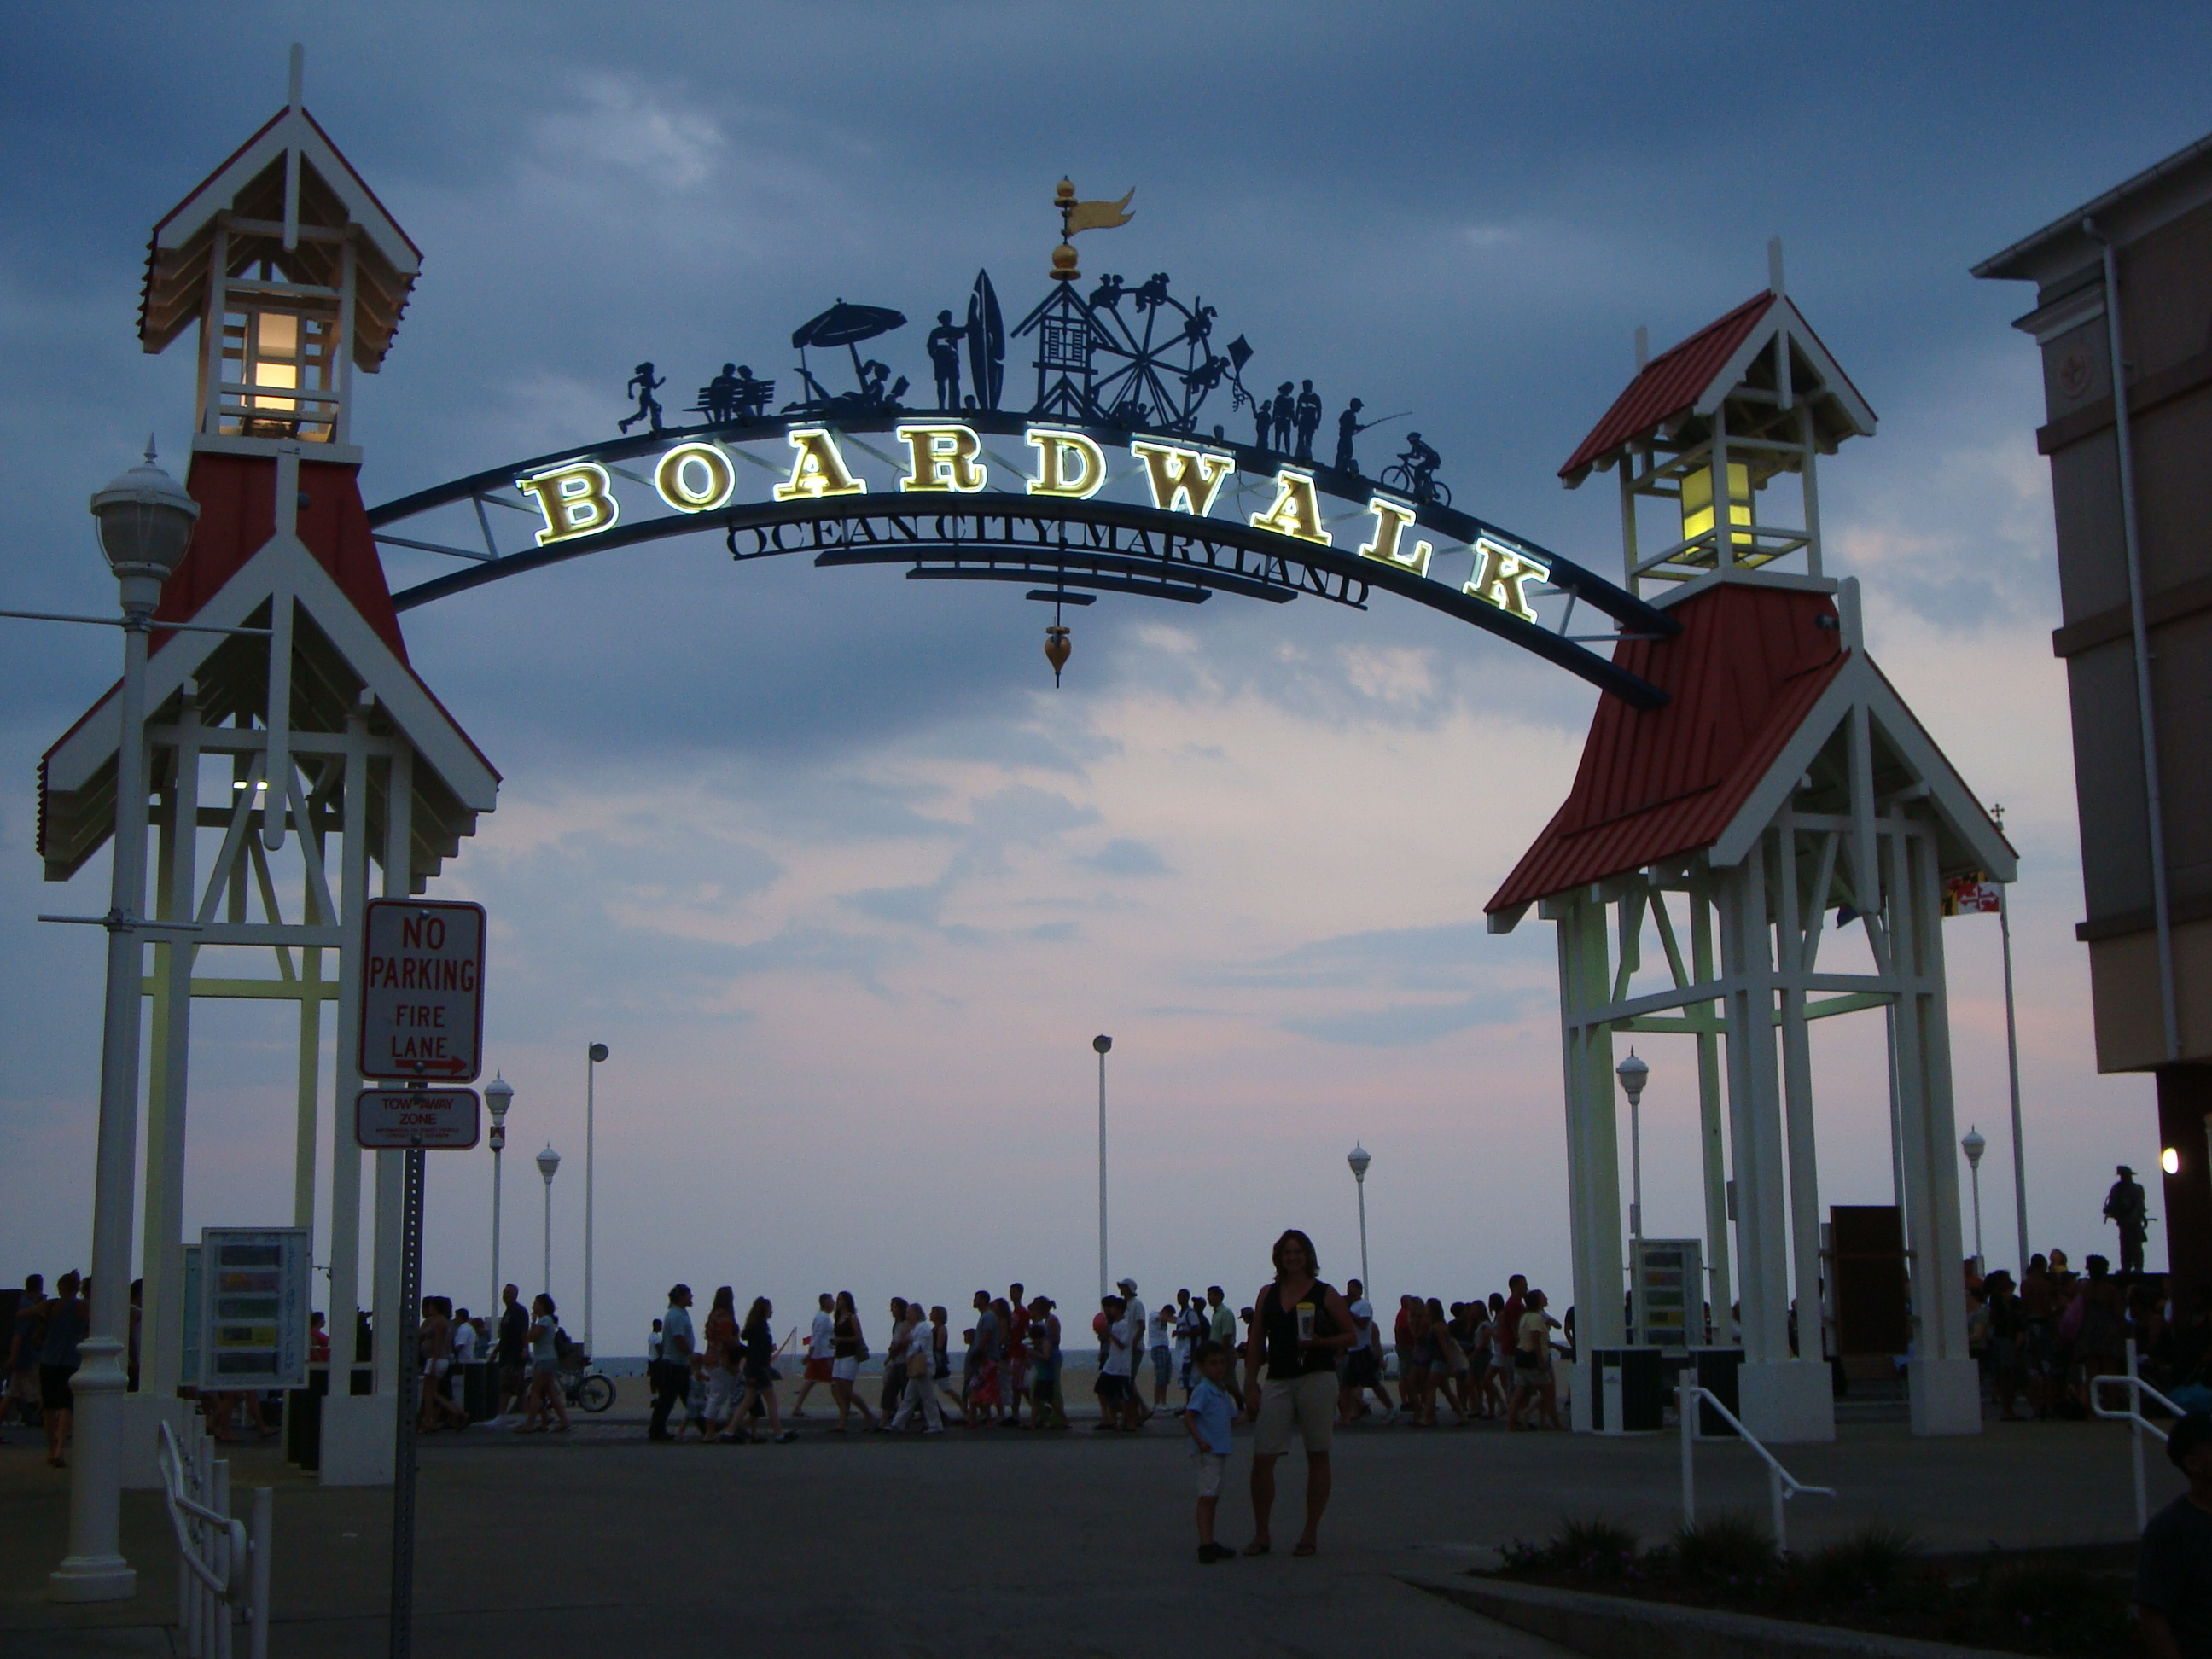 Boardwalk sign at Ocean City Maryland at dusk